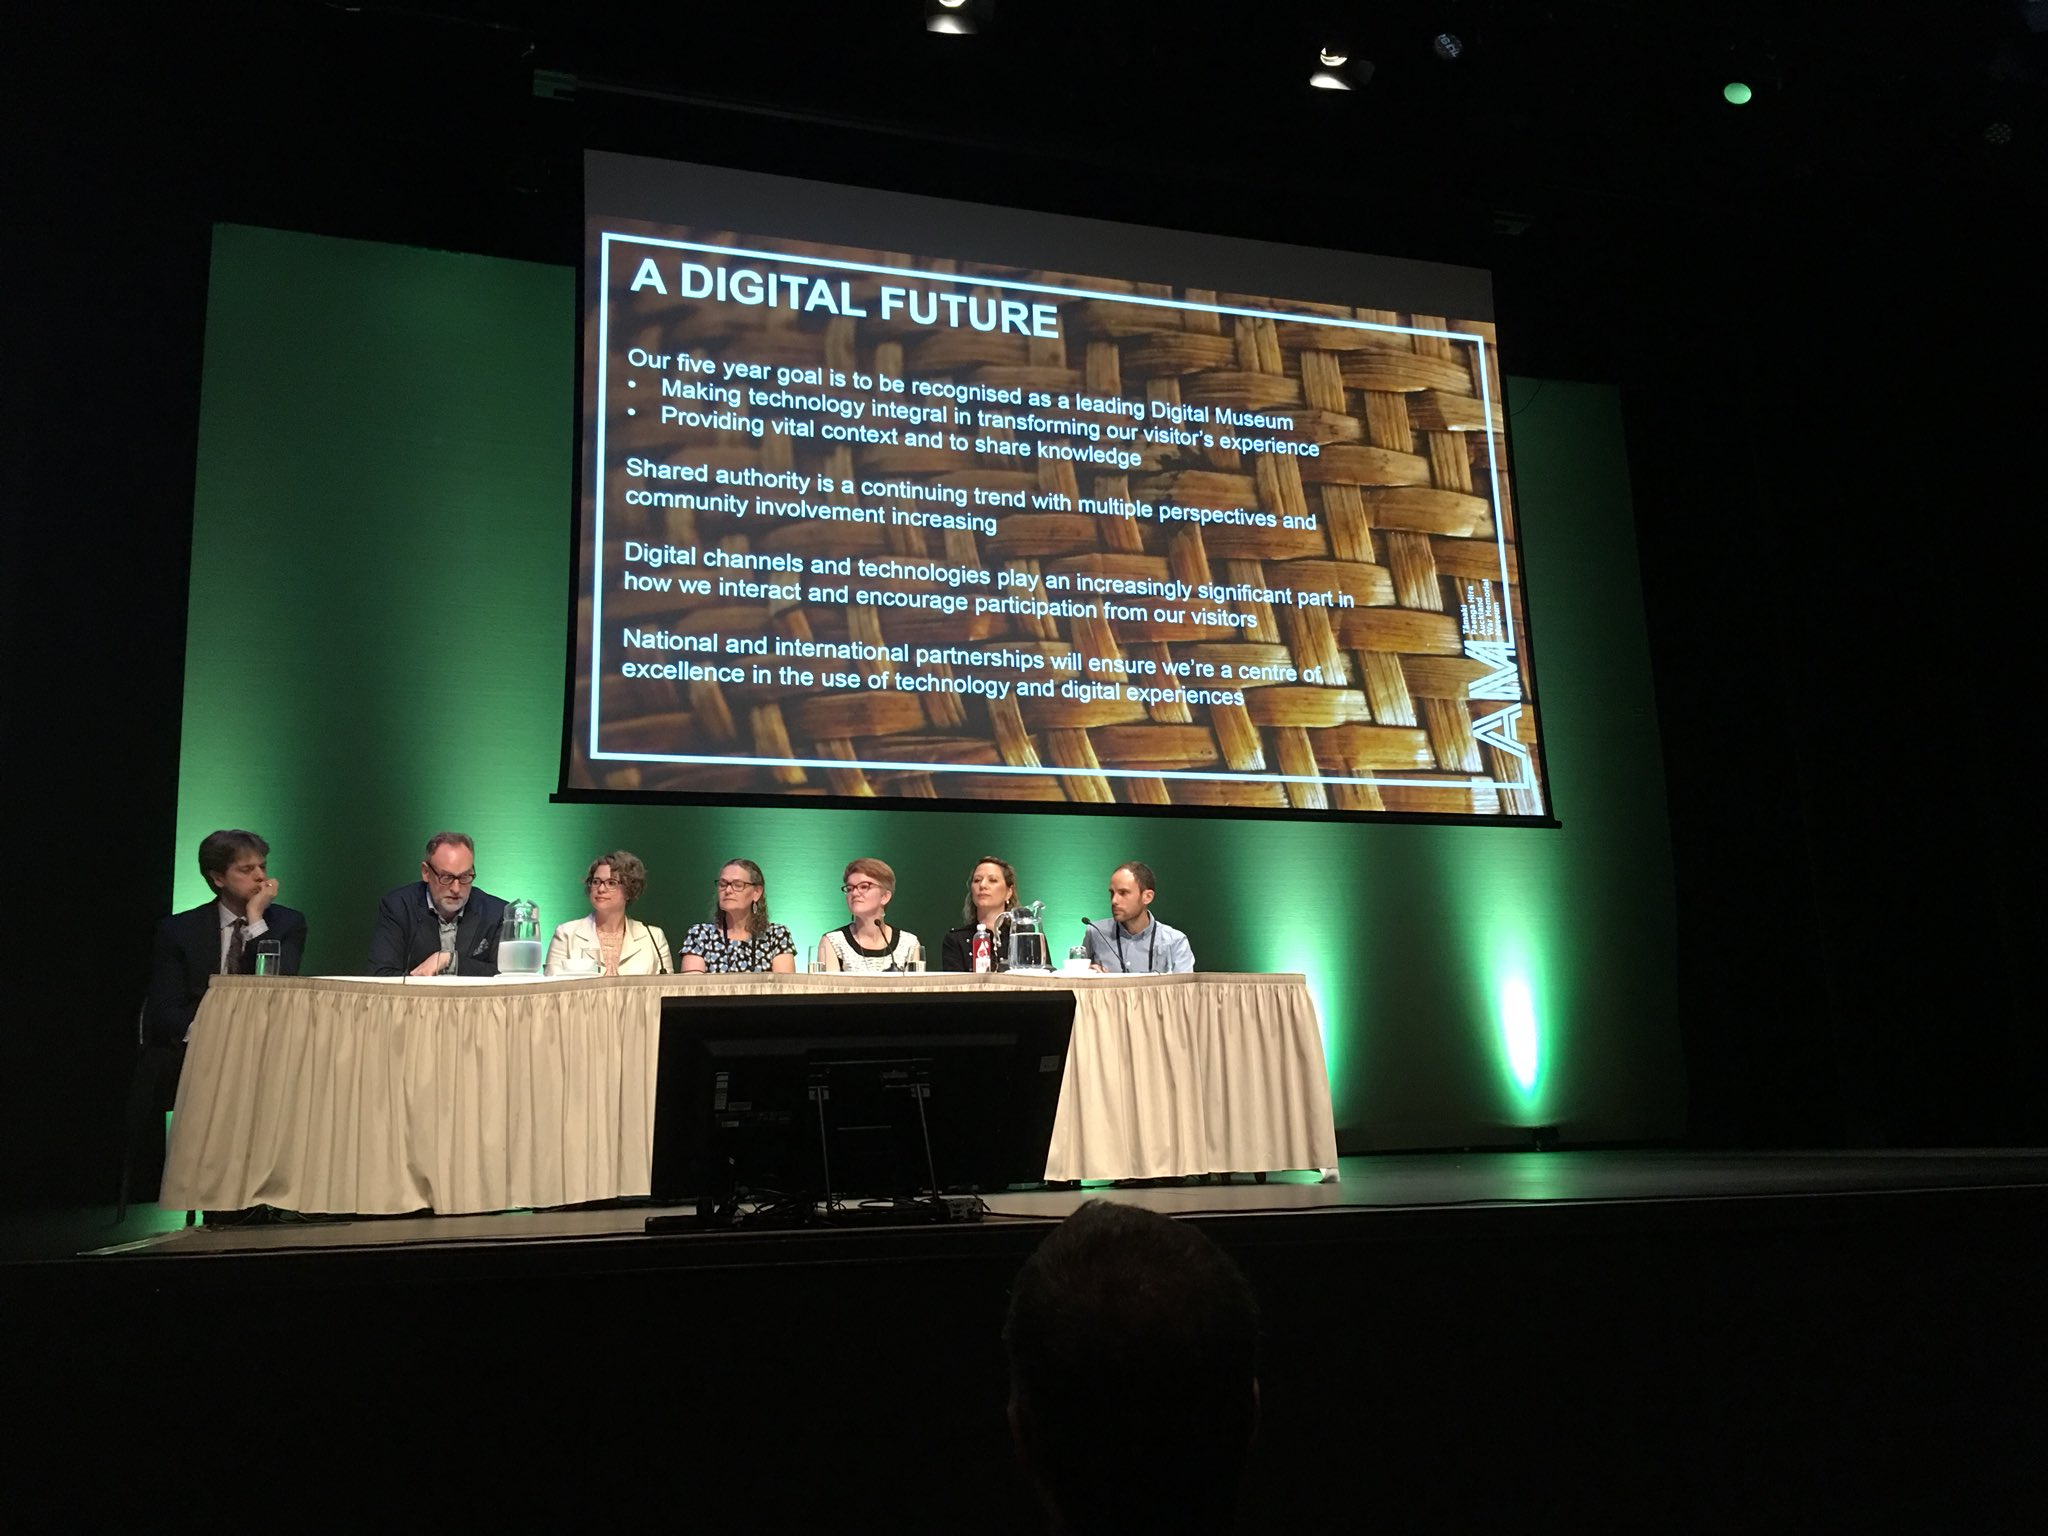 Five-year goal to be a leading digital museum from Auckland Museum's Director David Gaimster #NDFNZ https://t.co/Buw5Qee1xx